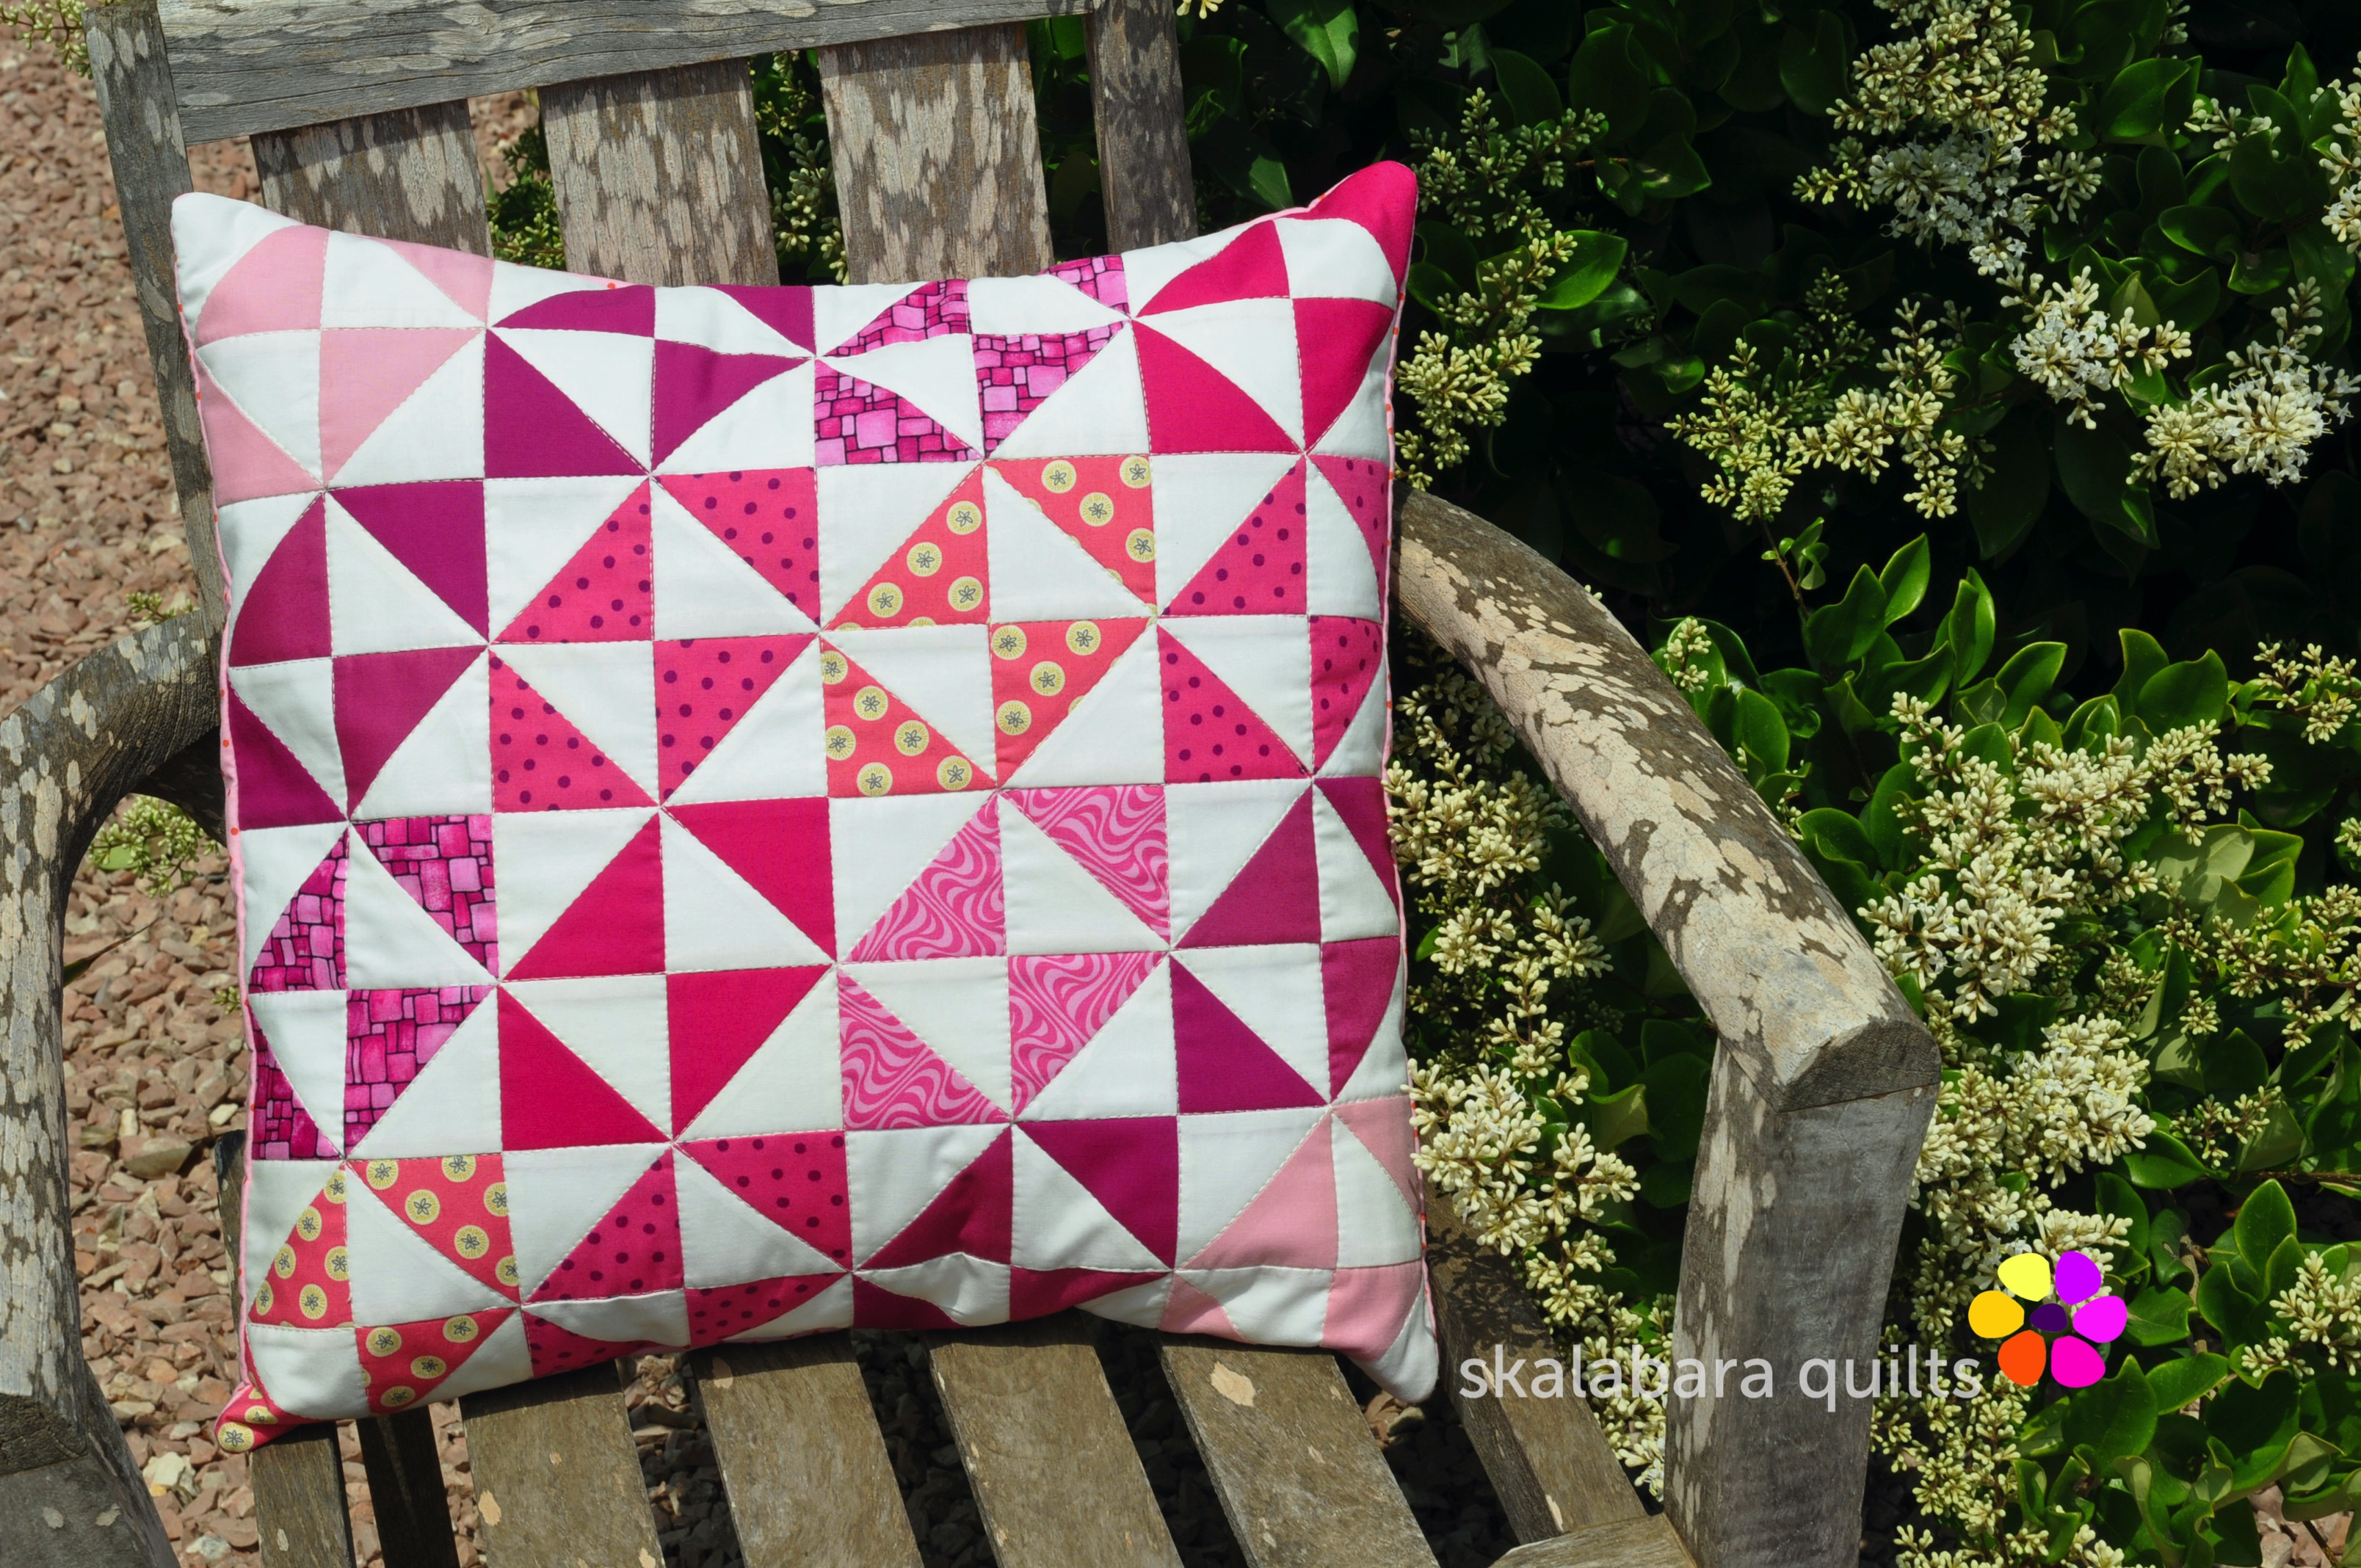 cushion covers broken dishes in pink 8 - skalabara quilts